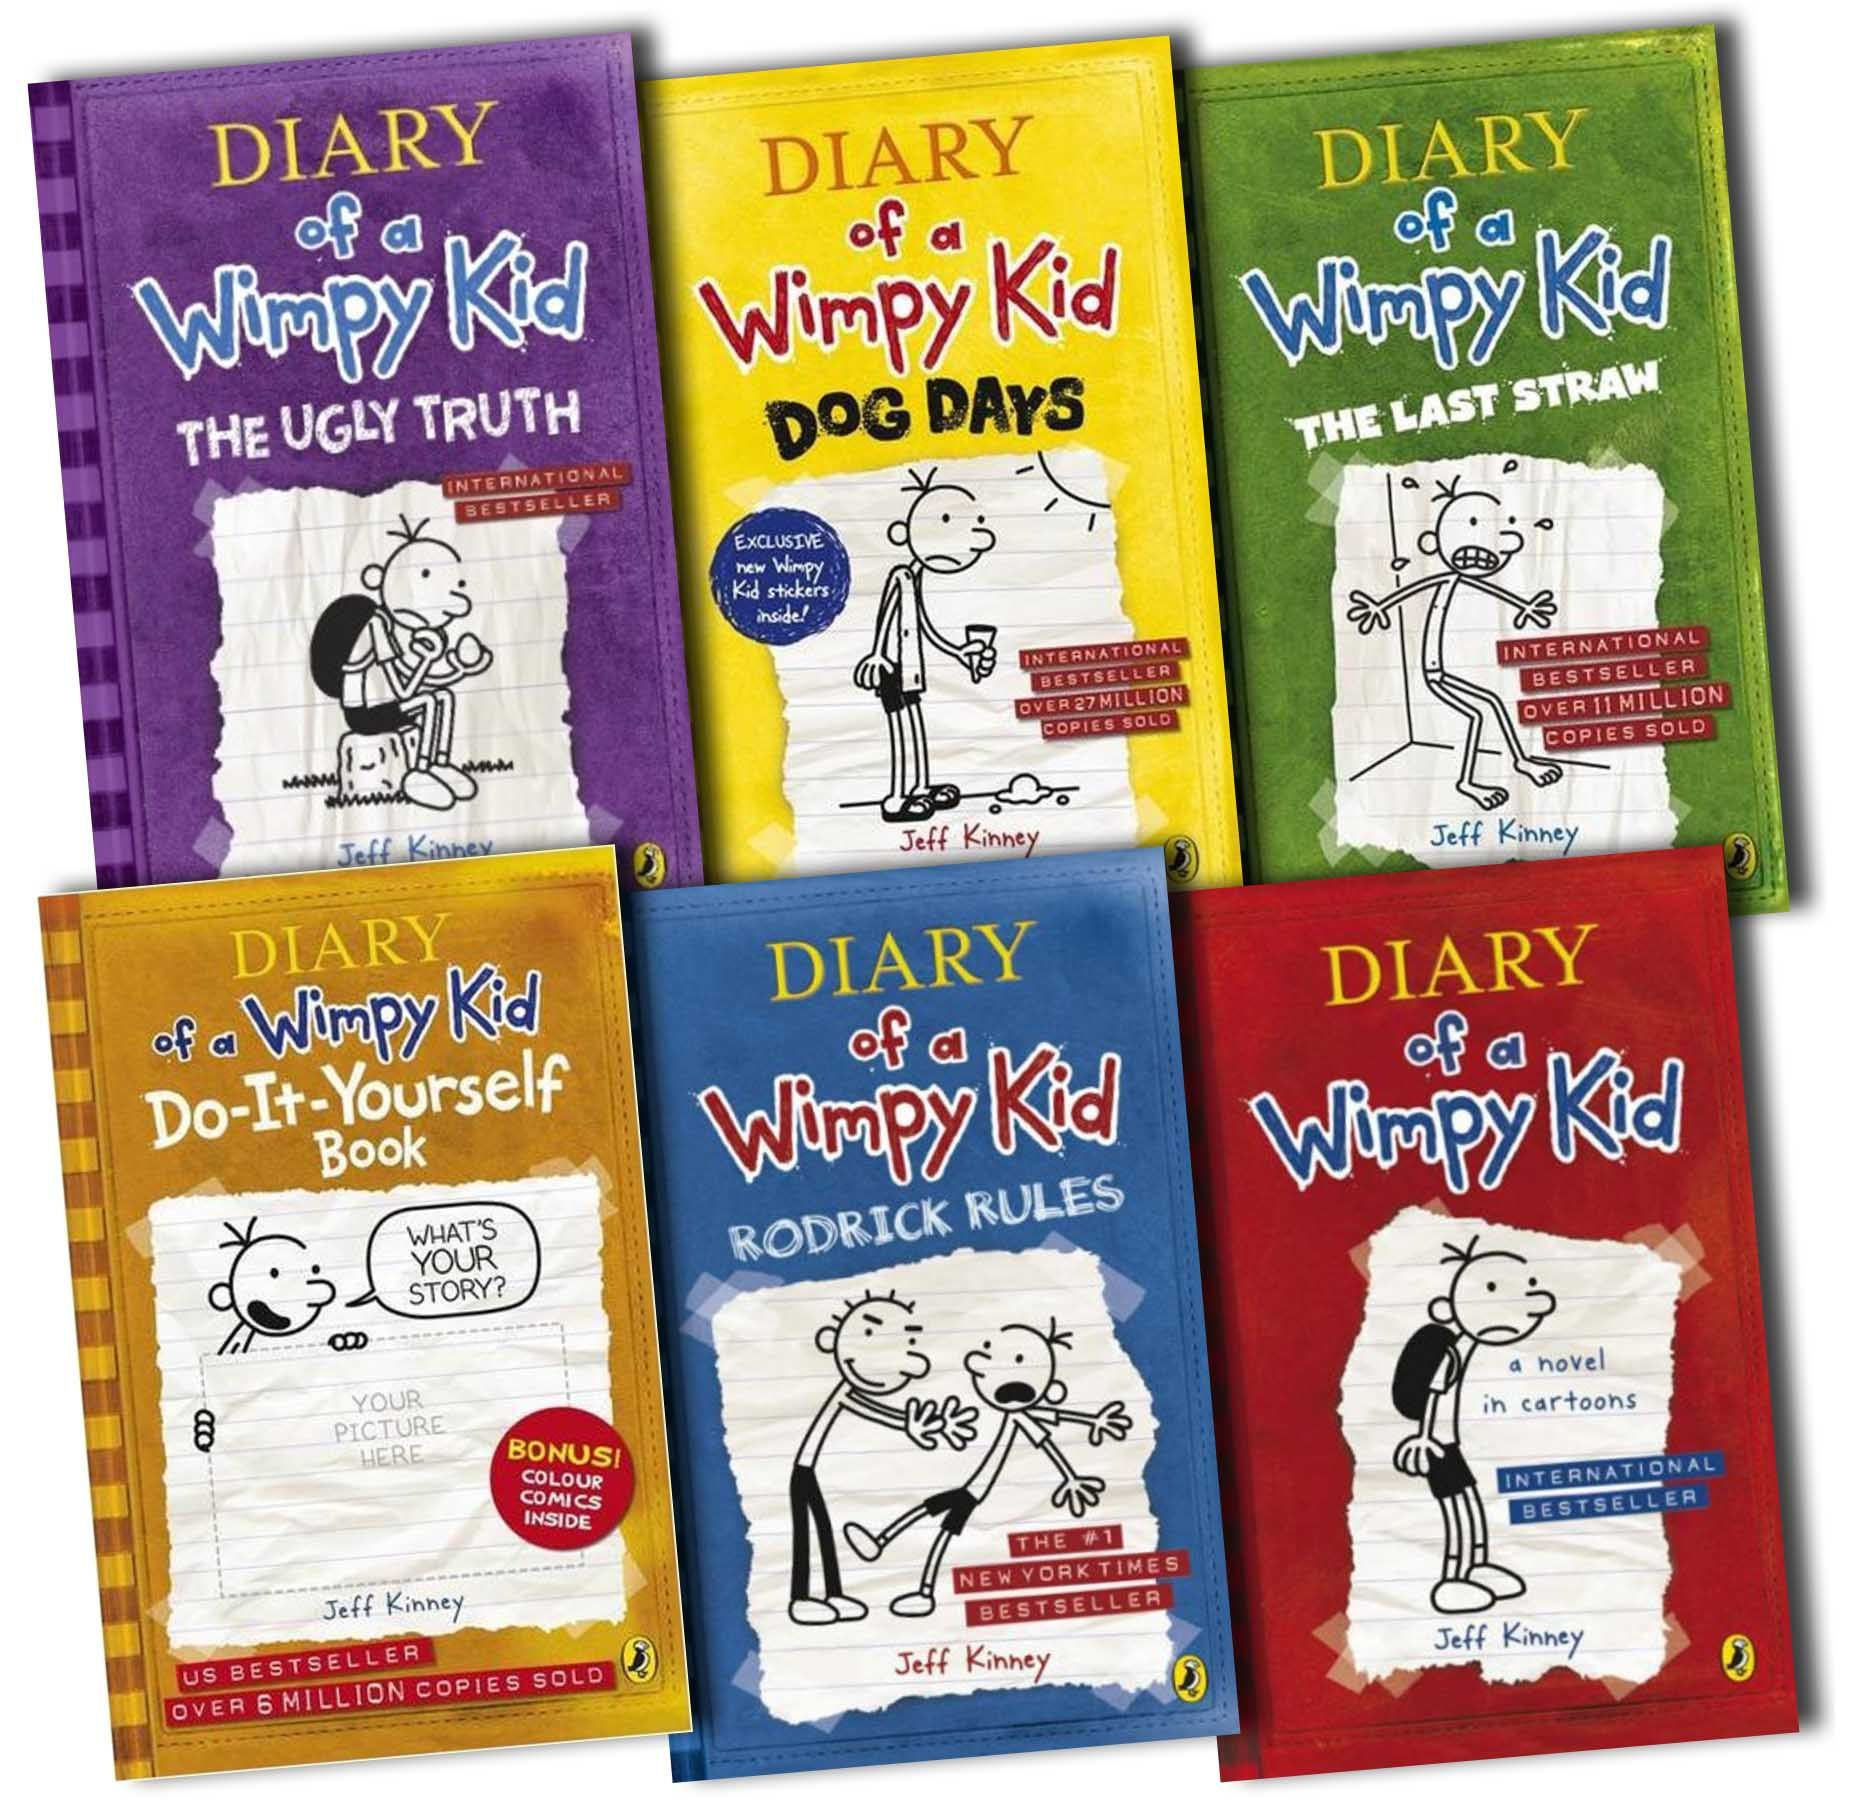 Diary of a wimpy kid my son loves these books reading room ii diary of a wimpy kid my son loves these books solutioingenieria Images